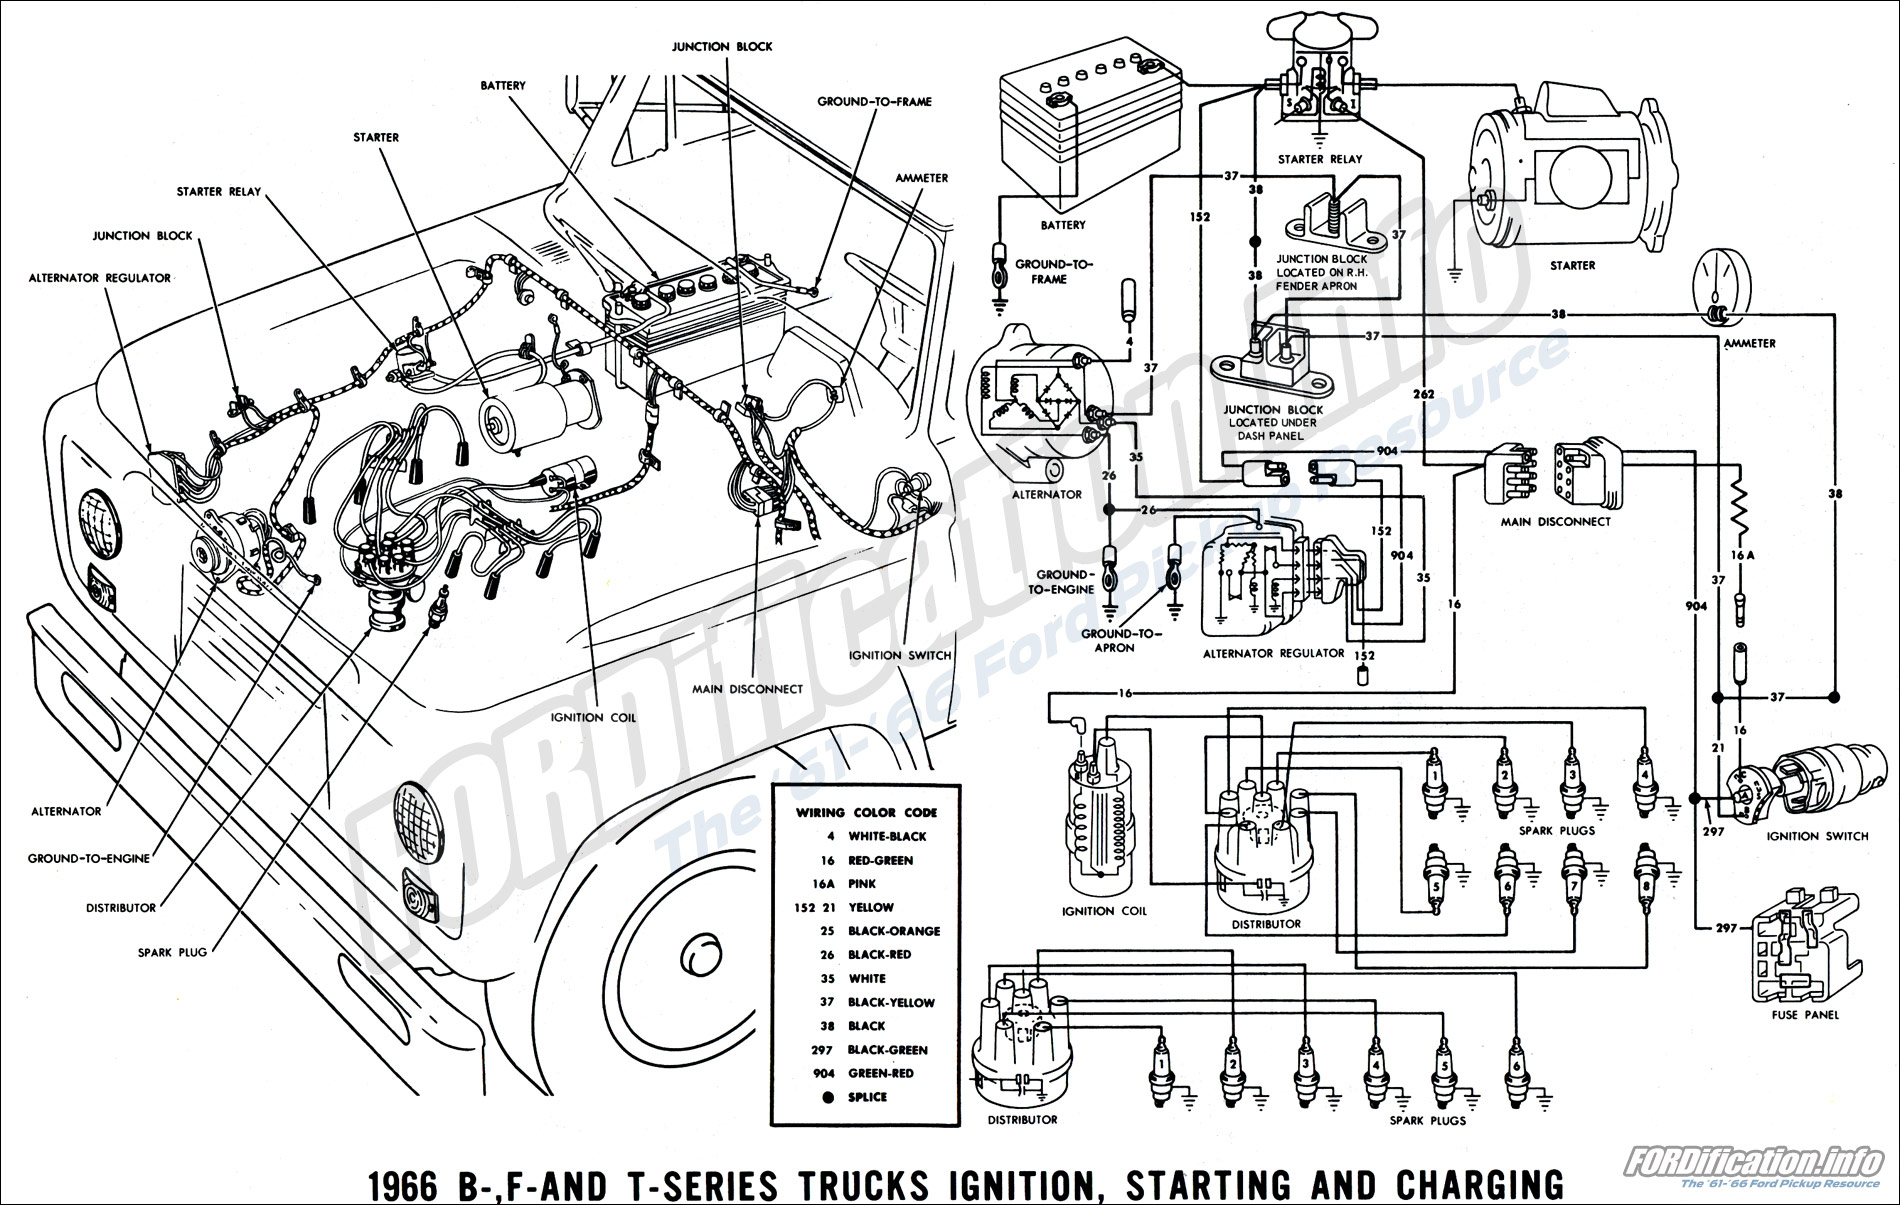 truck wiring diagram truck wiring diagram wiring diagrams rh parsplus co Chevy C10 Wiring-Diagram Chevy Wiper Motor Wiring Diagram